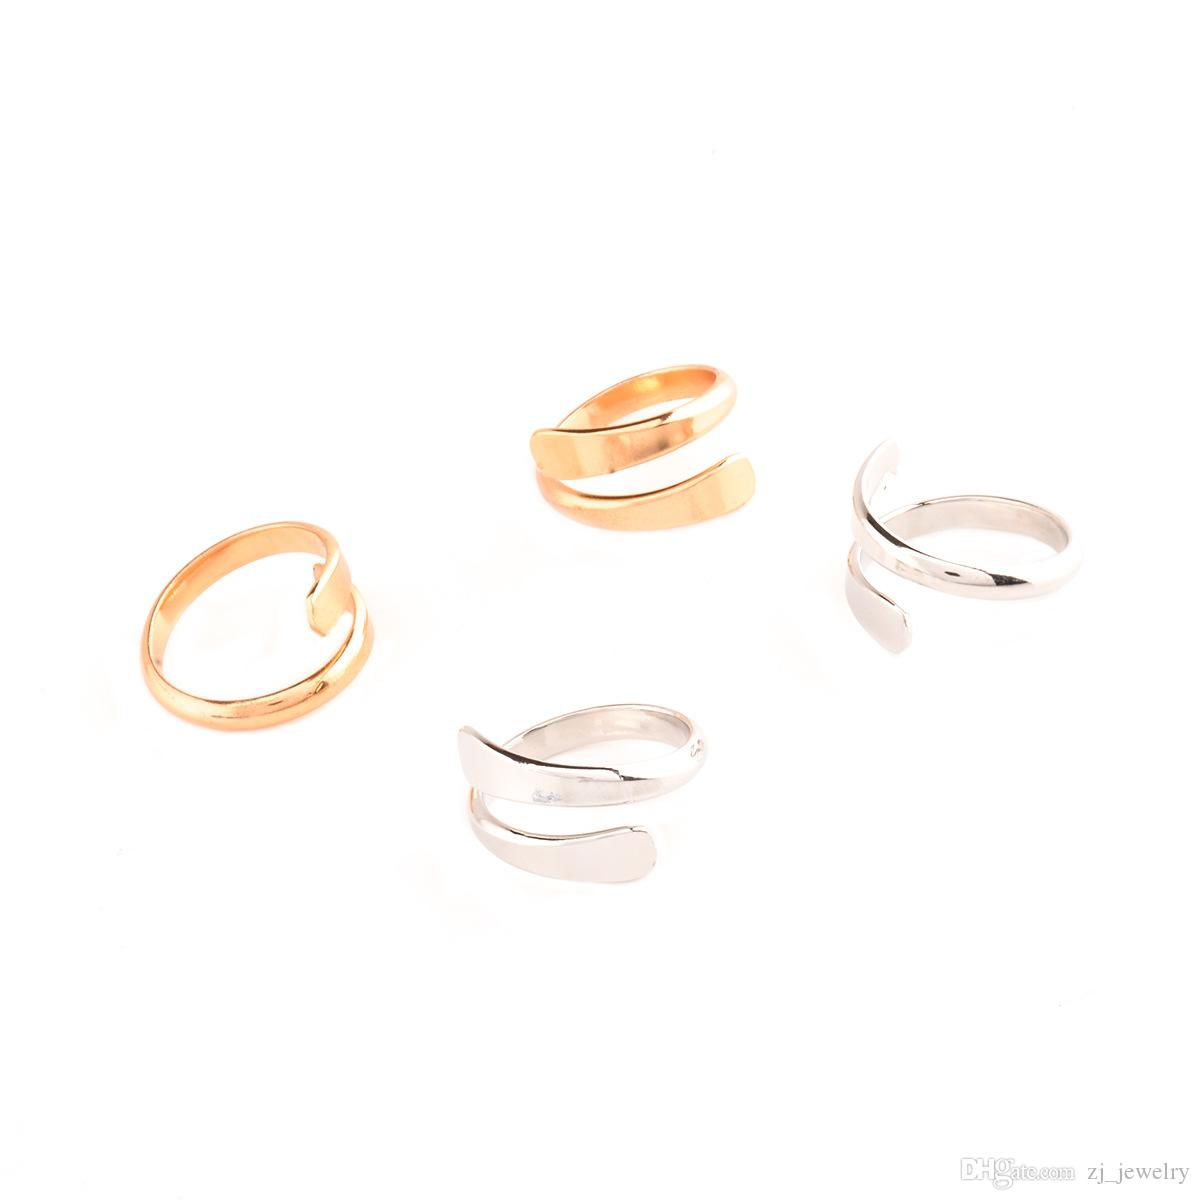 New Fashion Gold Silver Plated Simple Punk Open Rings For Women Open Adjustable Free Size Finger Party Rings bijoux 6